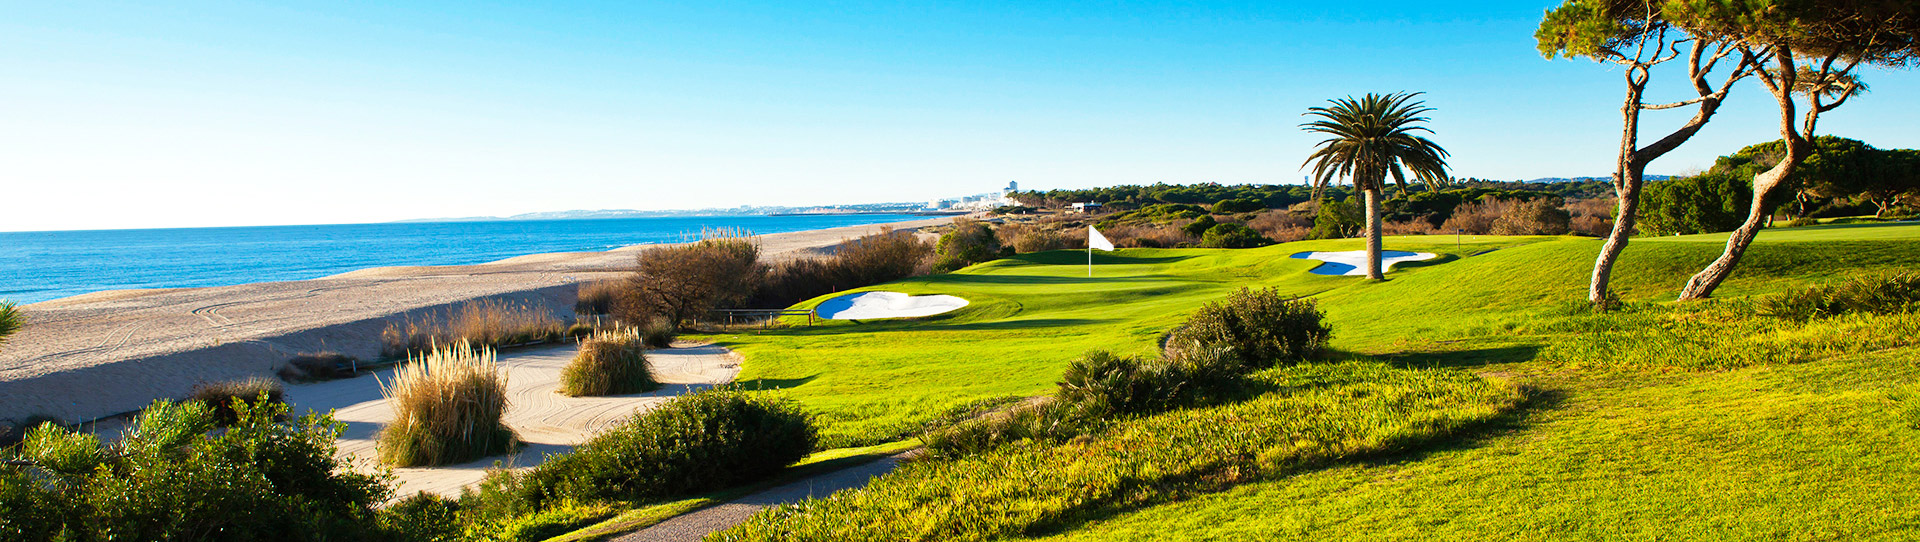 Vale do Lobo Trio Experience - Photo 1